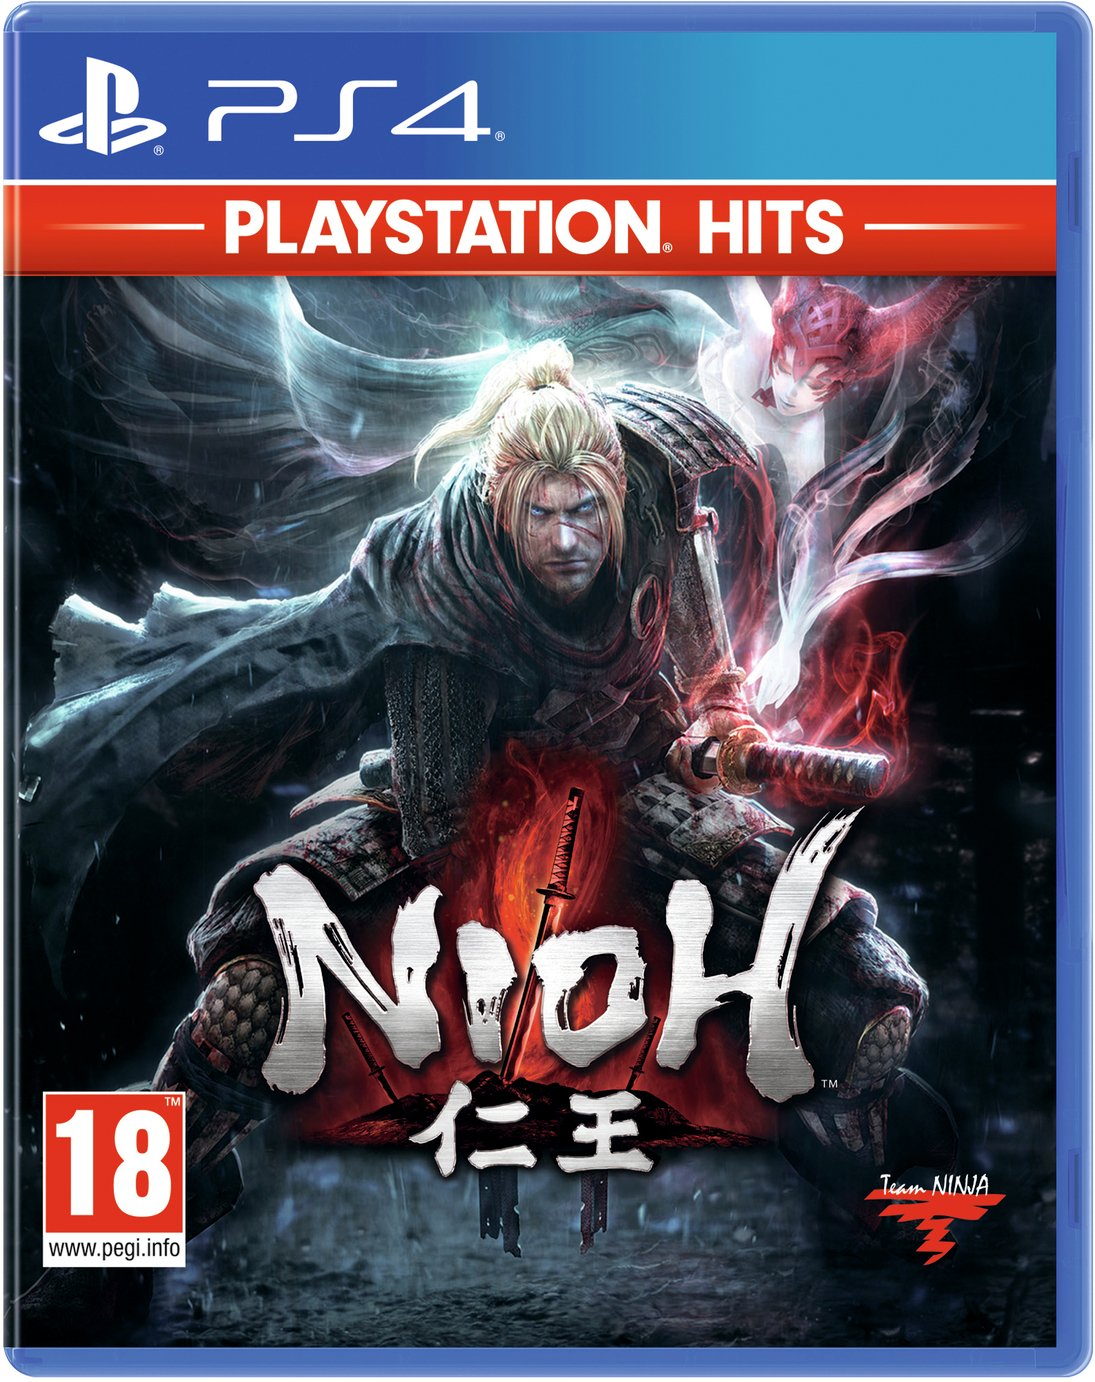 Nioh PS4 Hits Game